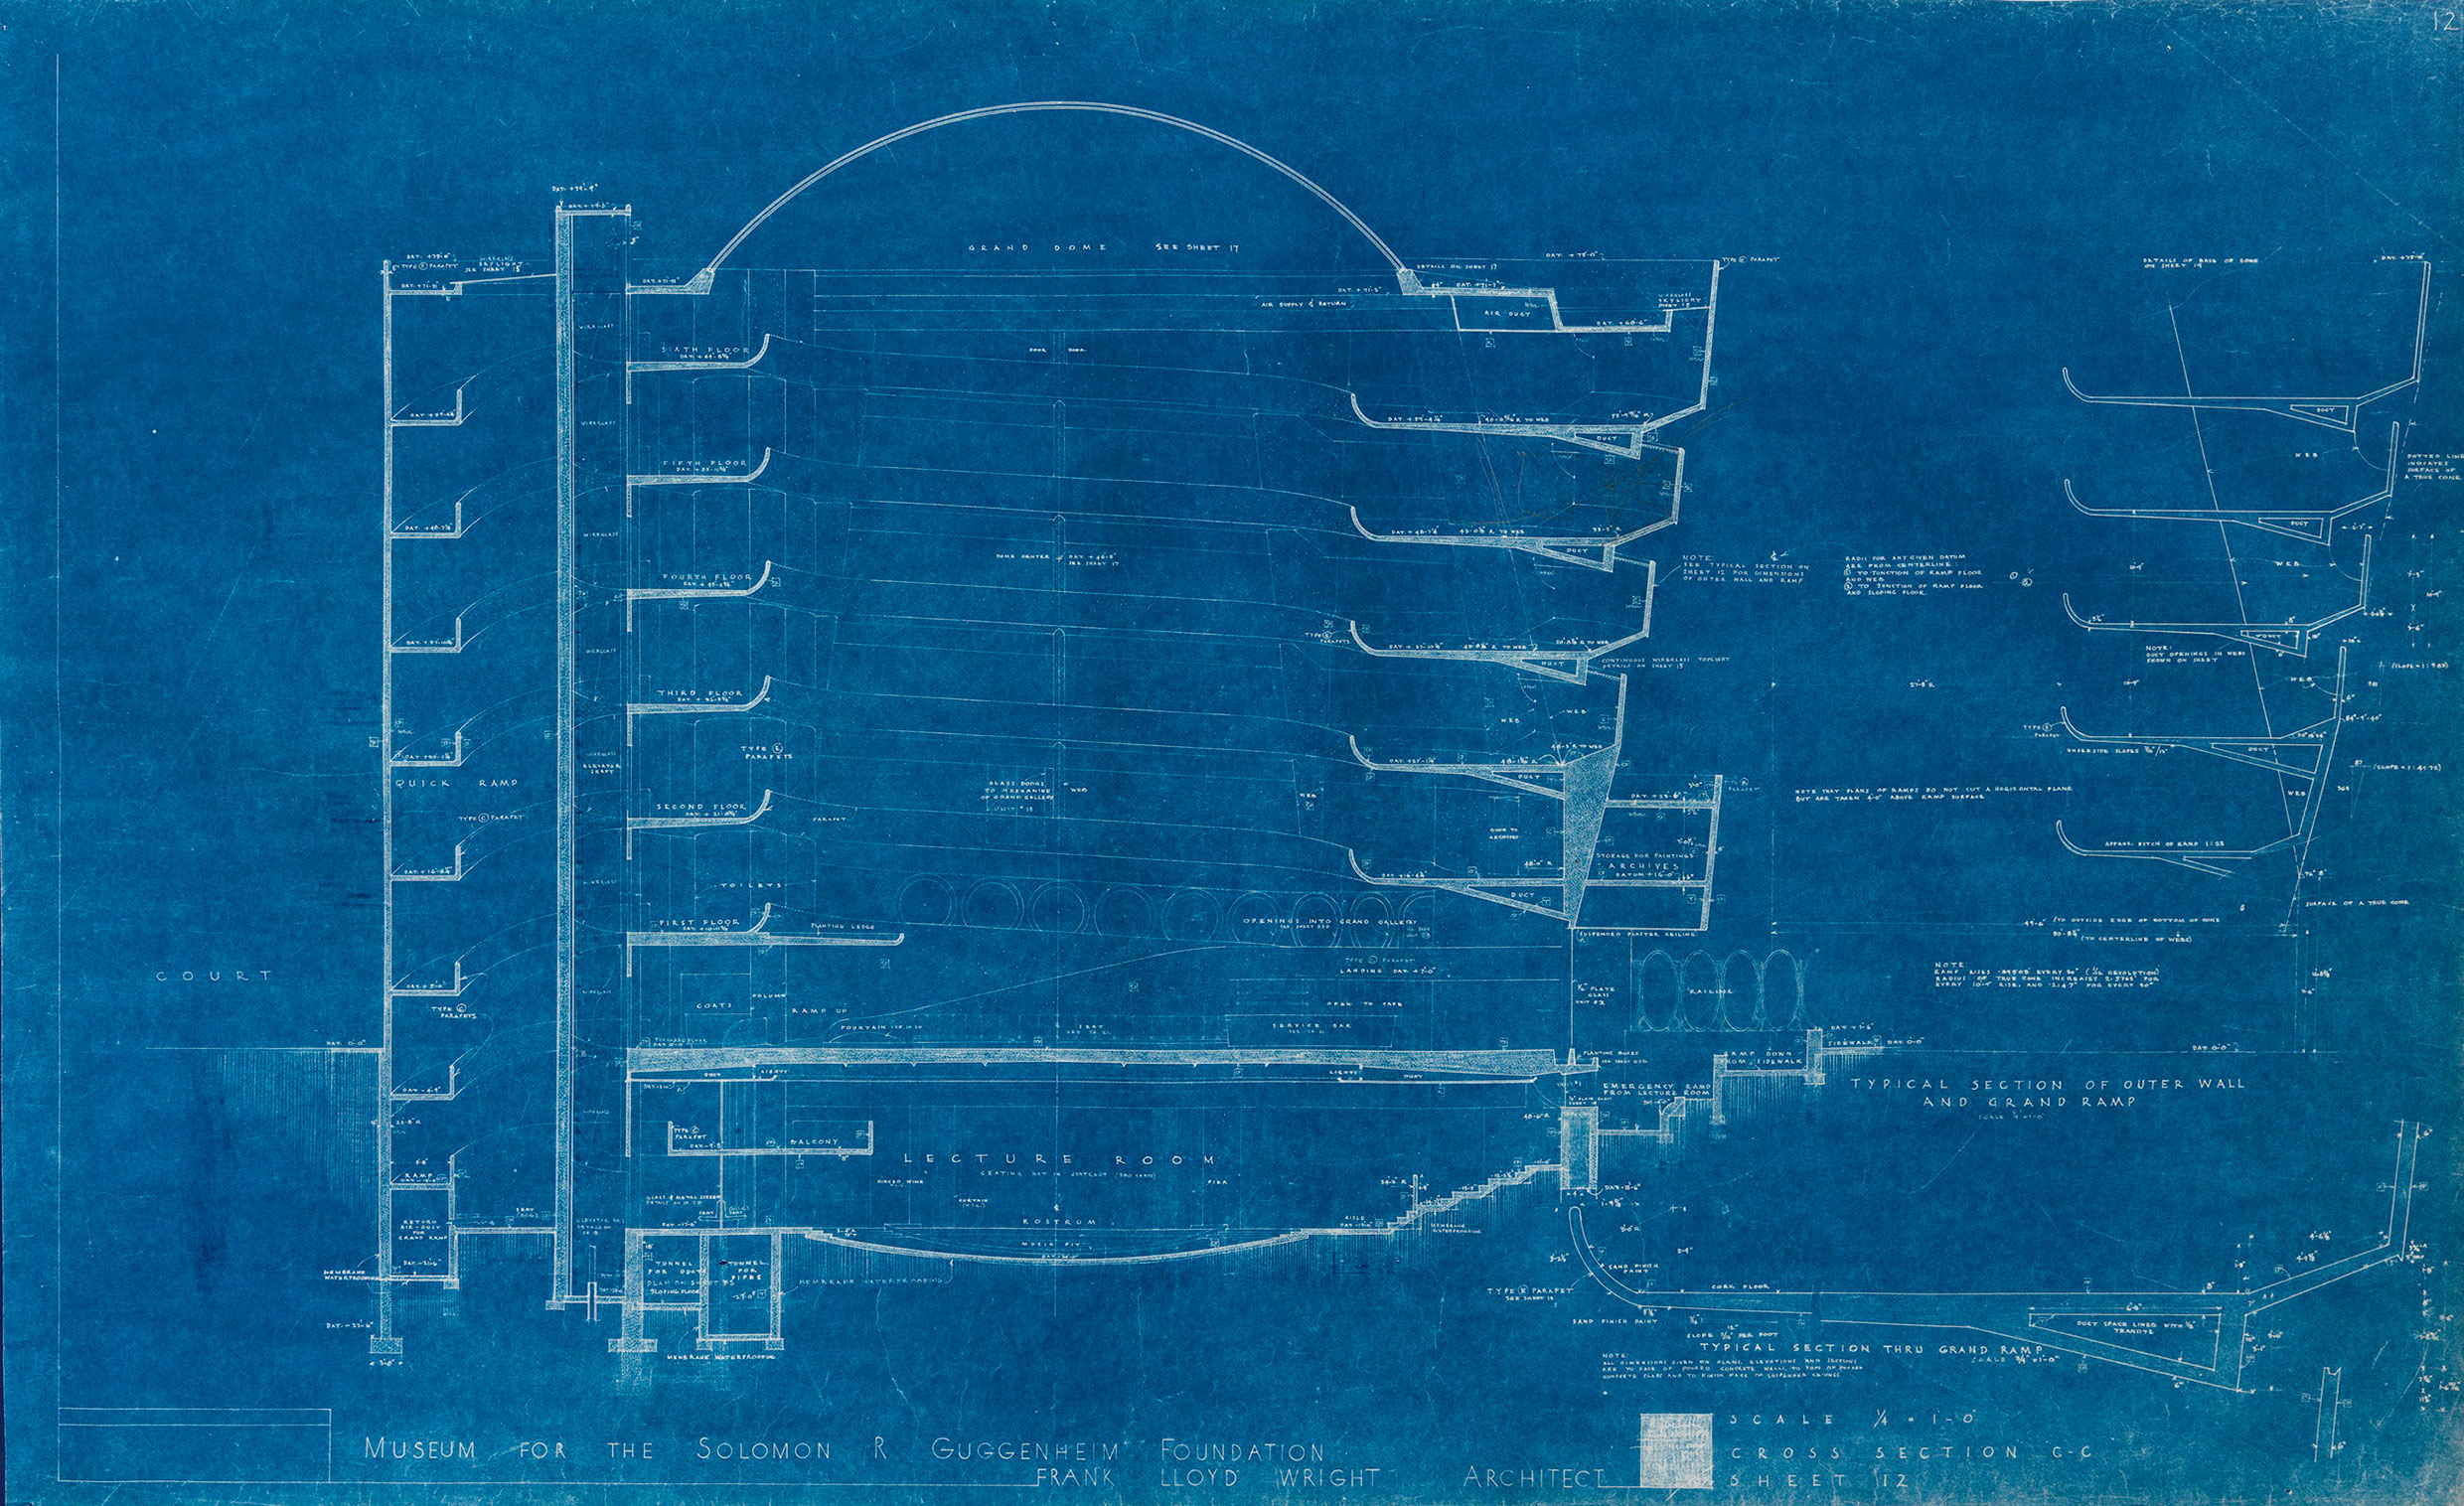 Illuminating details from frank lloyd wrights guggenheim blueprints the quick ramp is depicted on the left hand side of this section drawing from malvernweather Choice Image